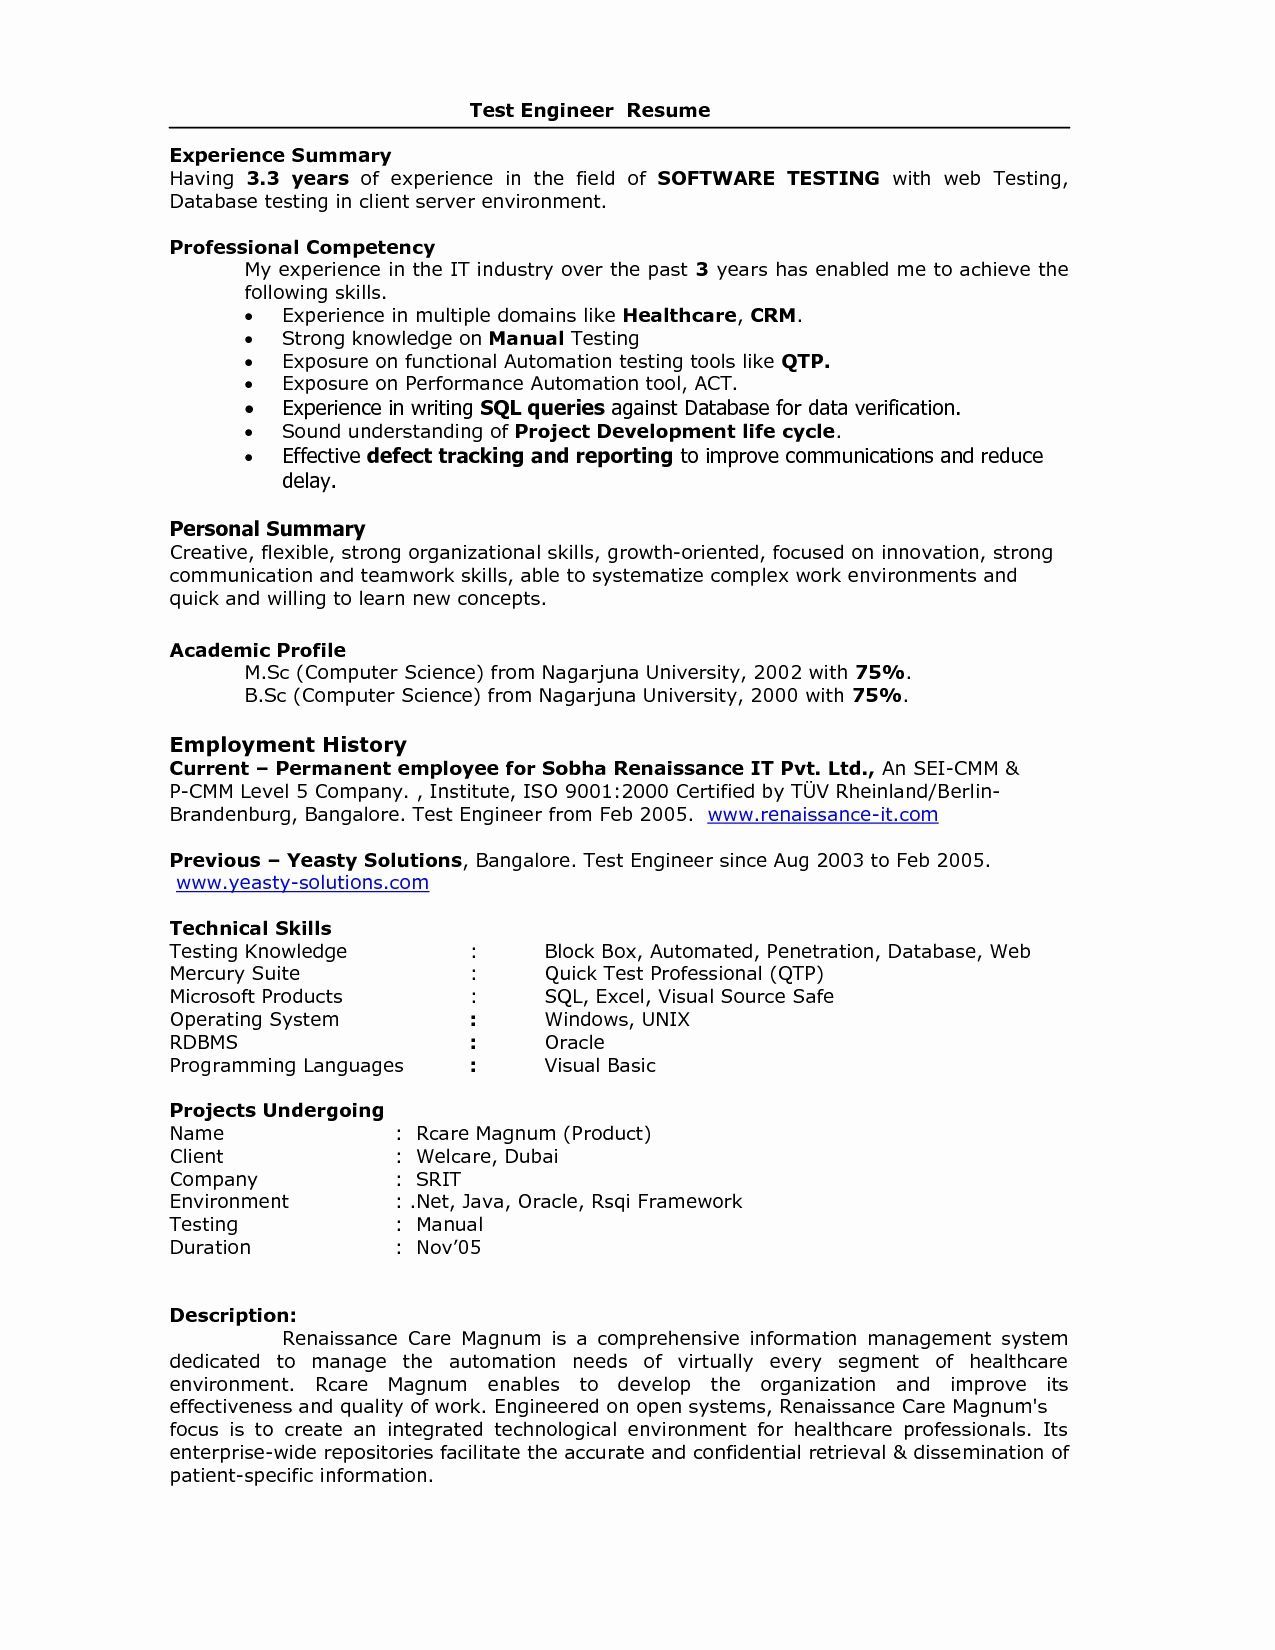 years experience resume format best sample healthcare domain project description for Resume Healthcare Domain Project Description For Resume